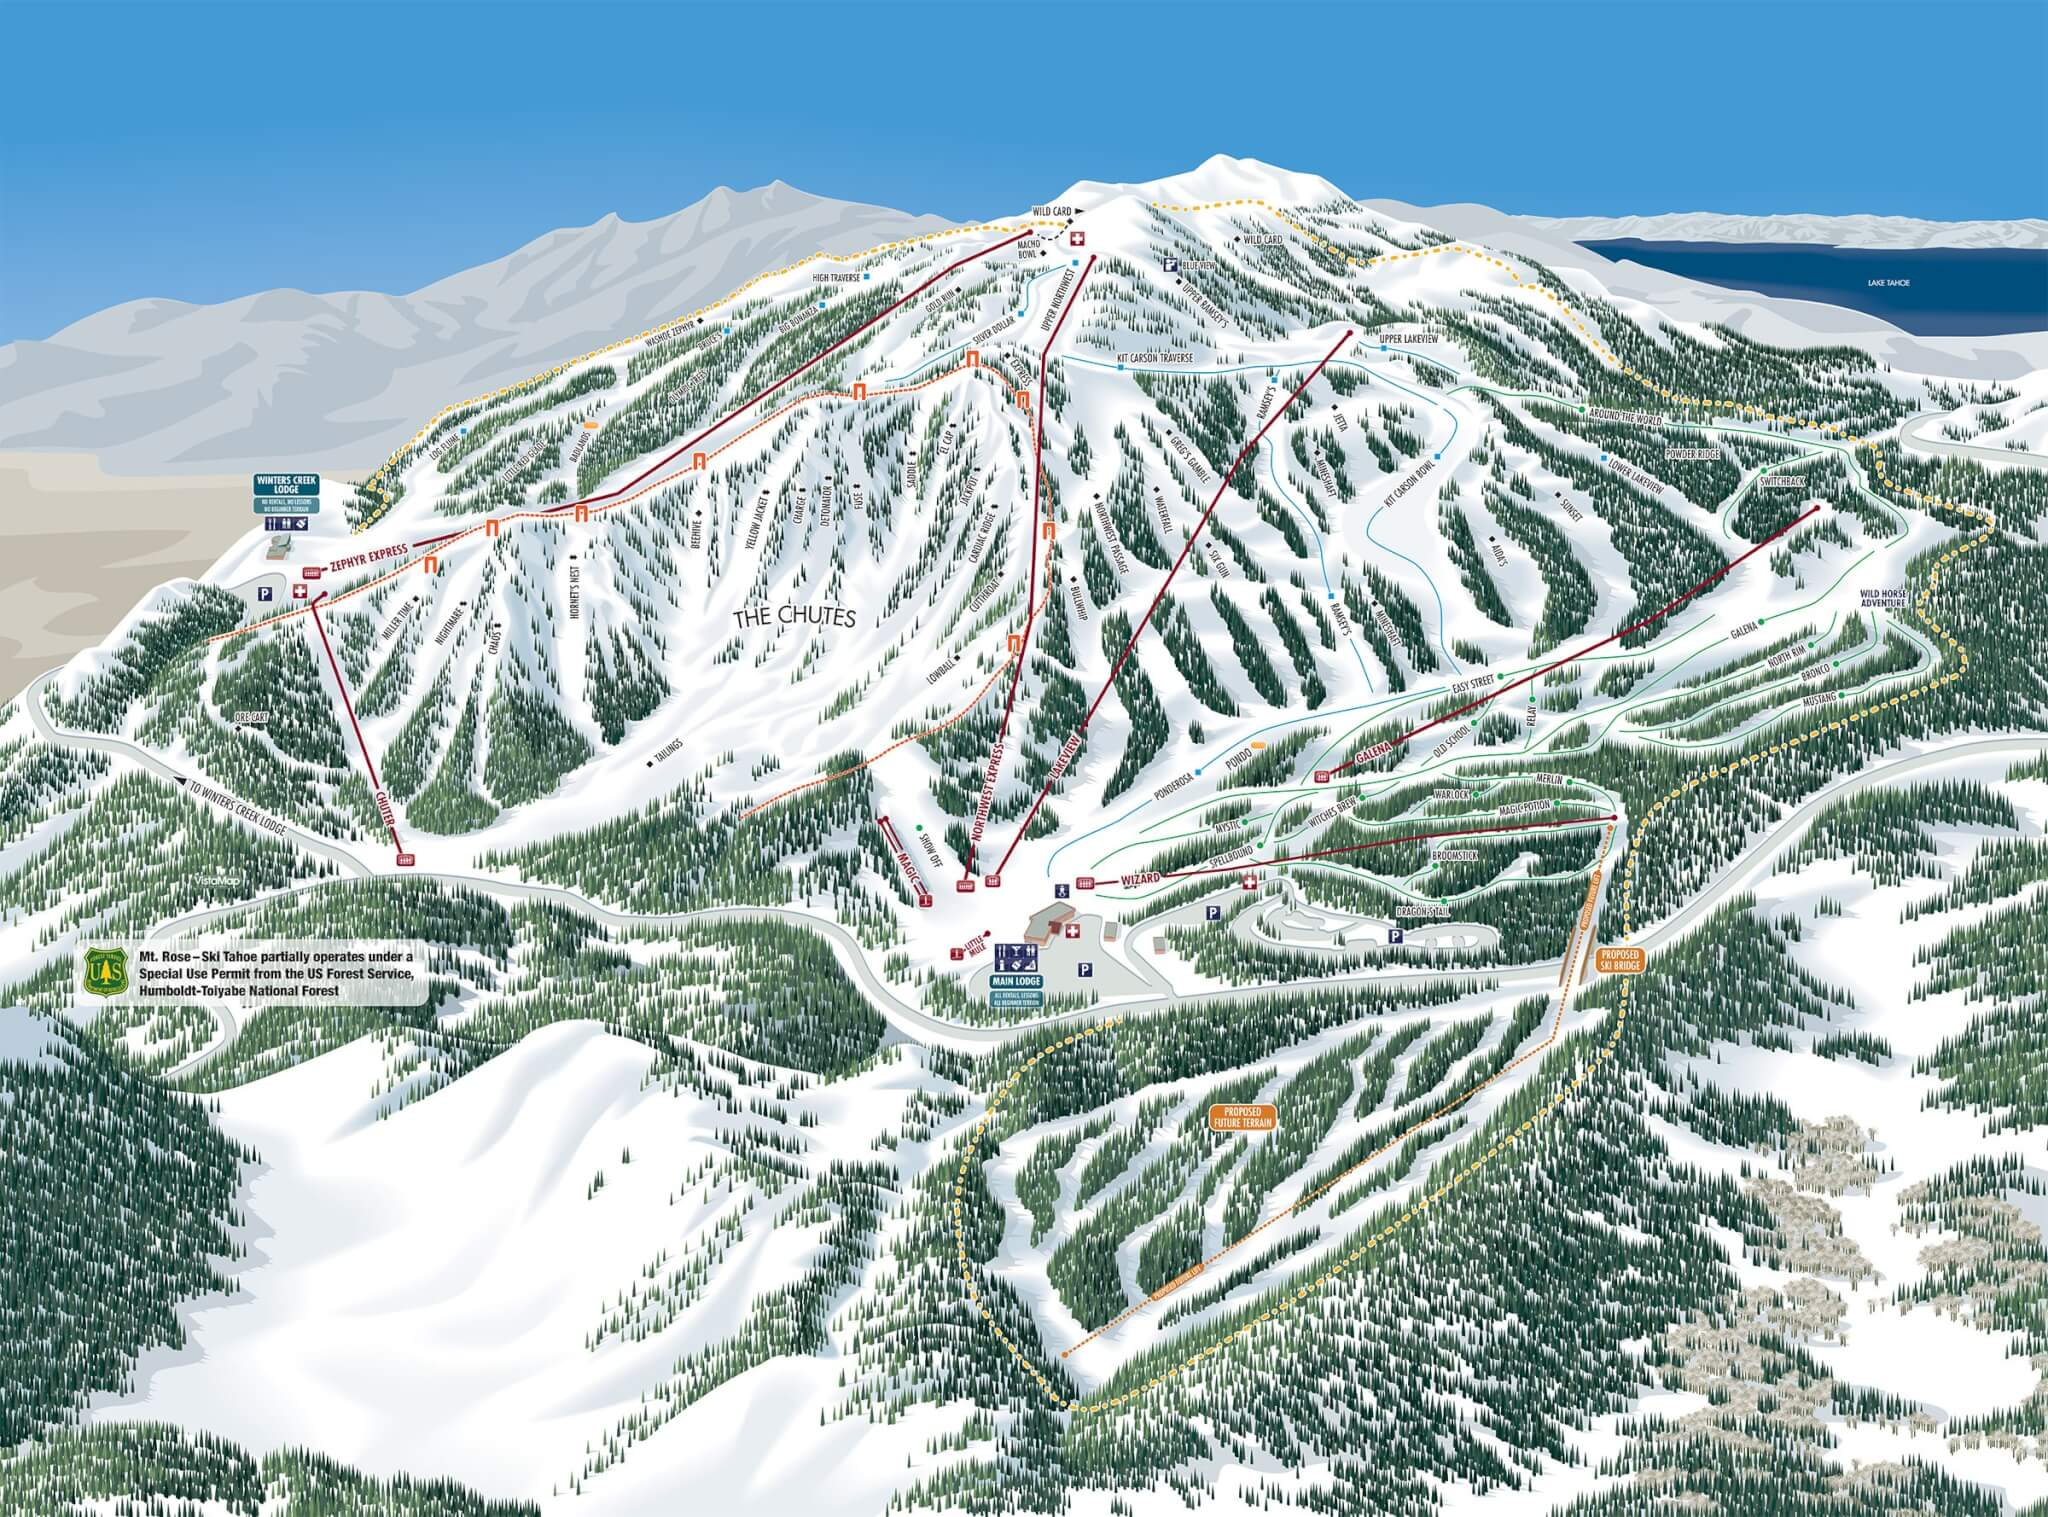 2020 Mt Rose ski resort expansion